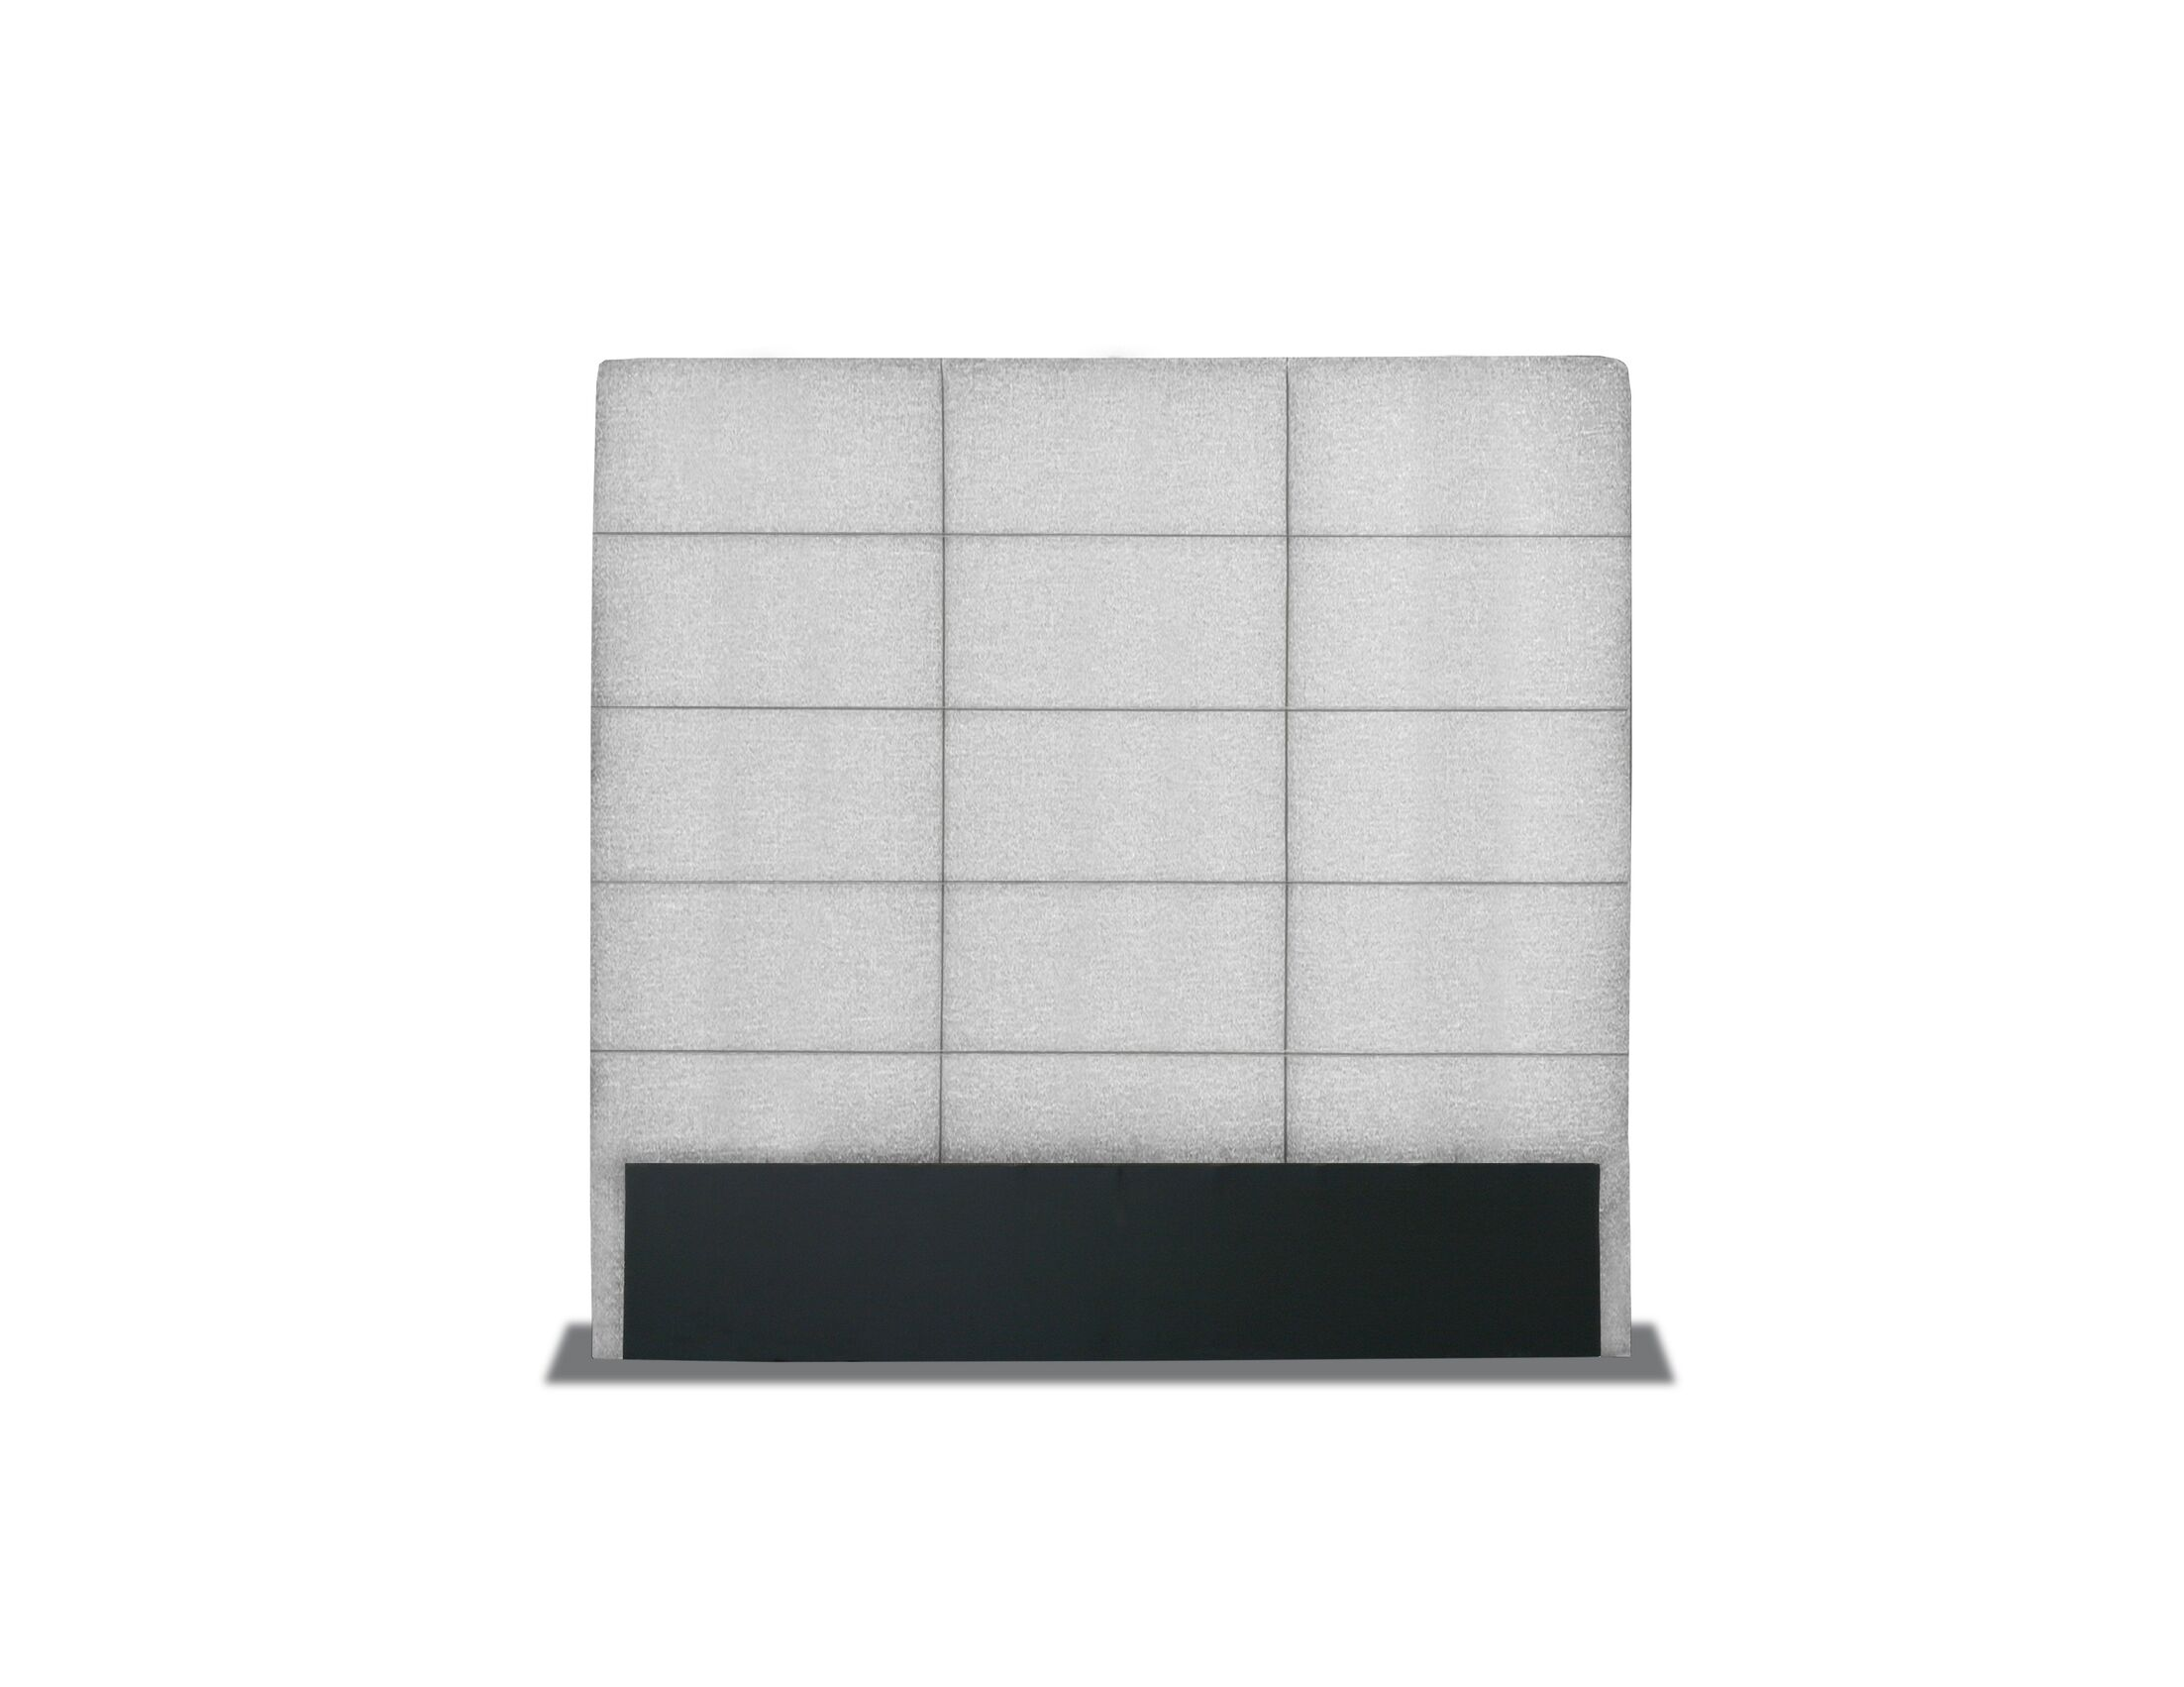 Handley Tufted Upholstered Panel Headboard Color: Gray, Size: High Height Queen